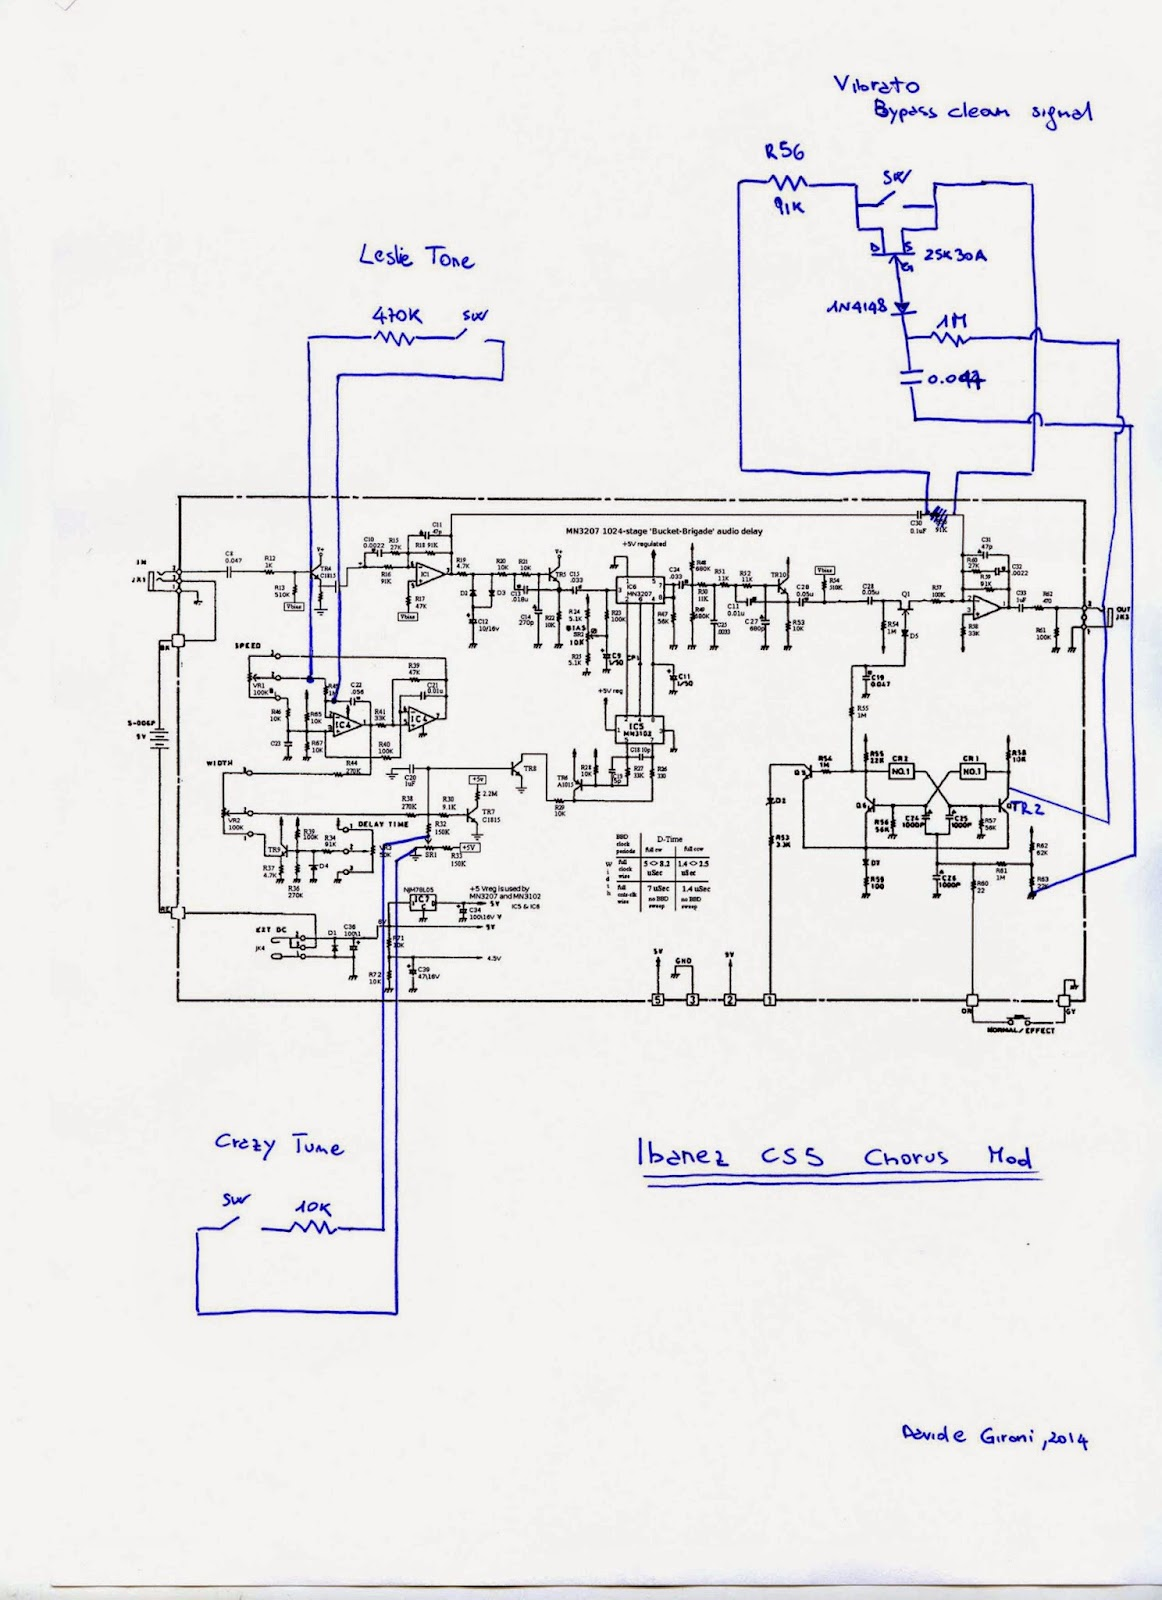 Davide Gironi Lm358 Op Amp Block Diagram Http Worldtechnicalblogspotcom 2012 01 Leslie Tone And Crazy Tune Mods Are Simply Uses Two 1 4 Resistors You Can Play Around With Values Here To Experiment Sounds